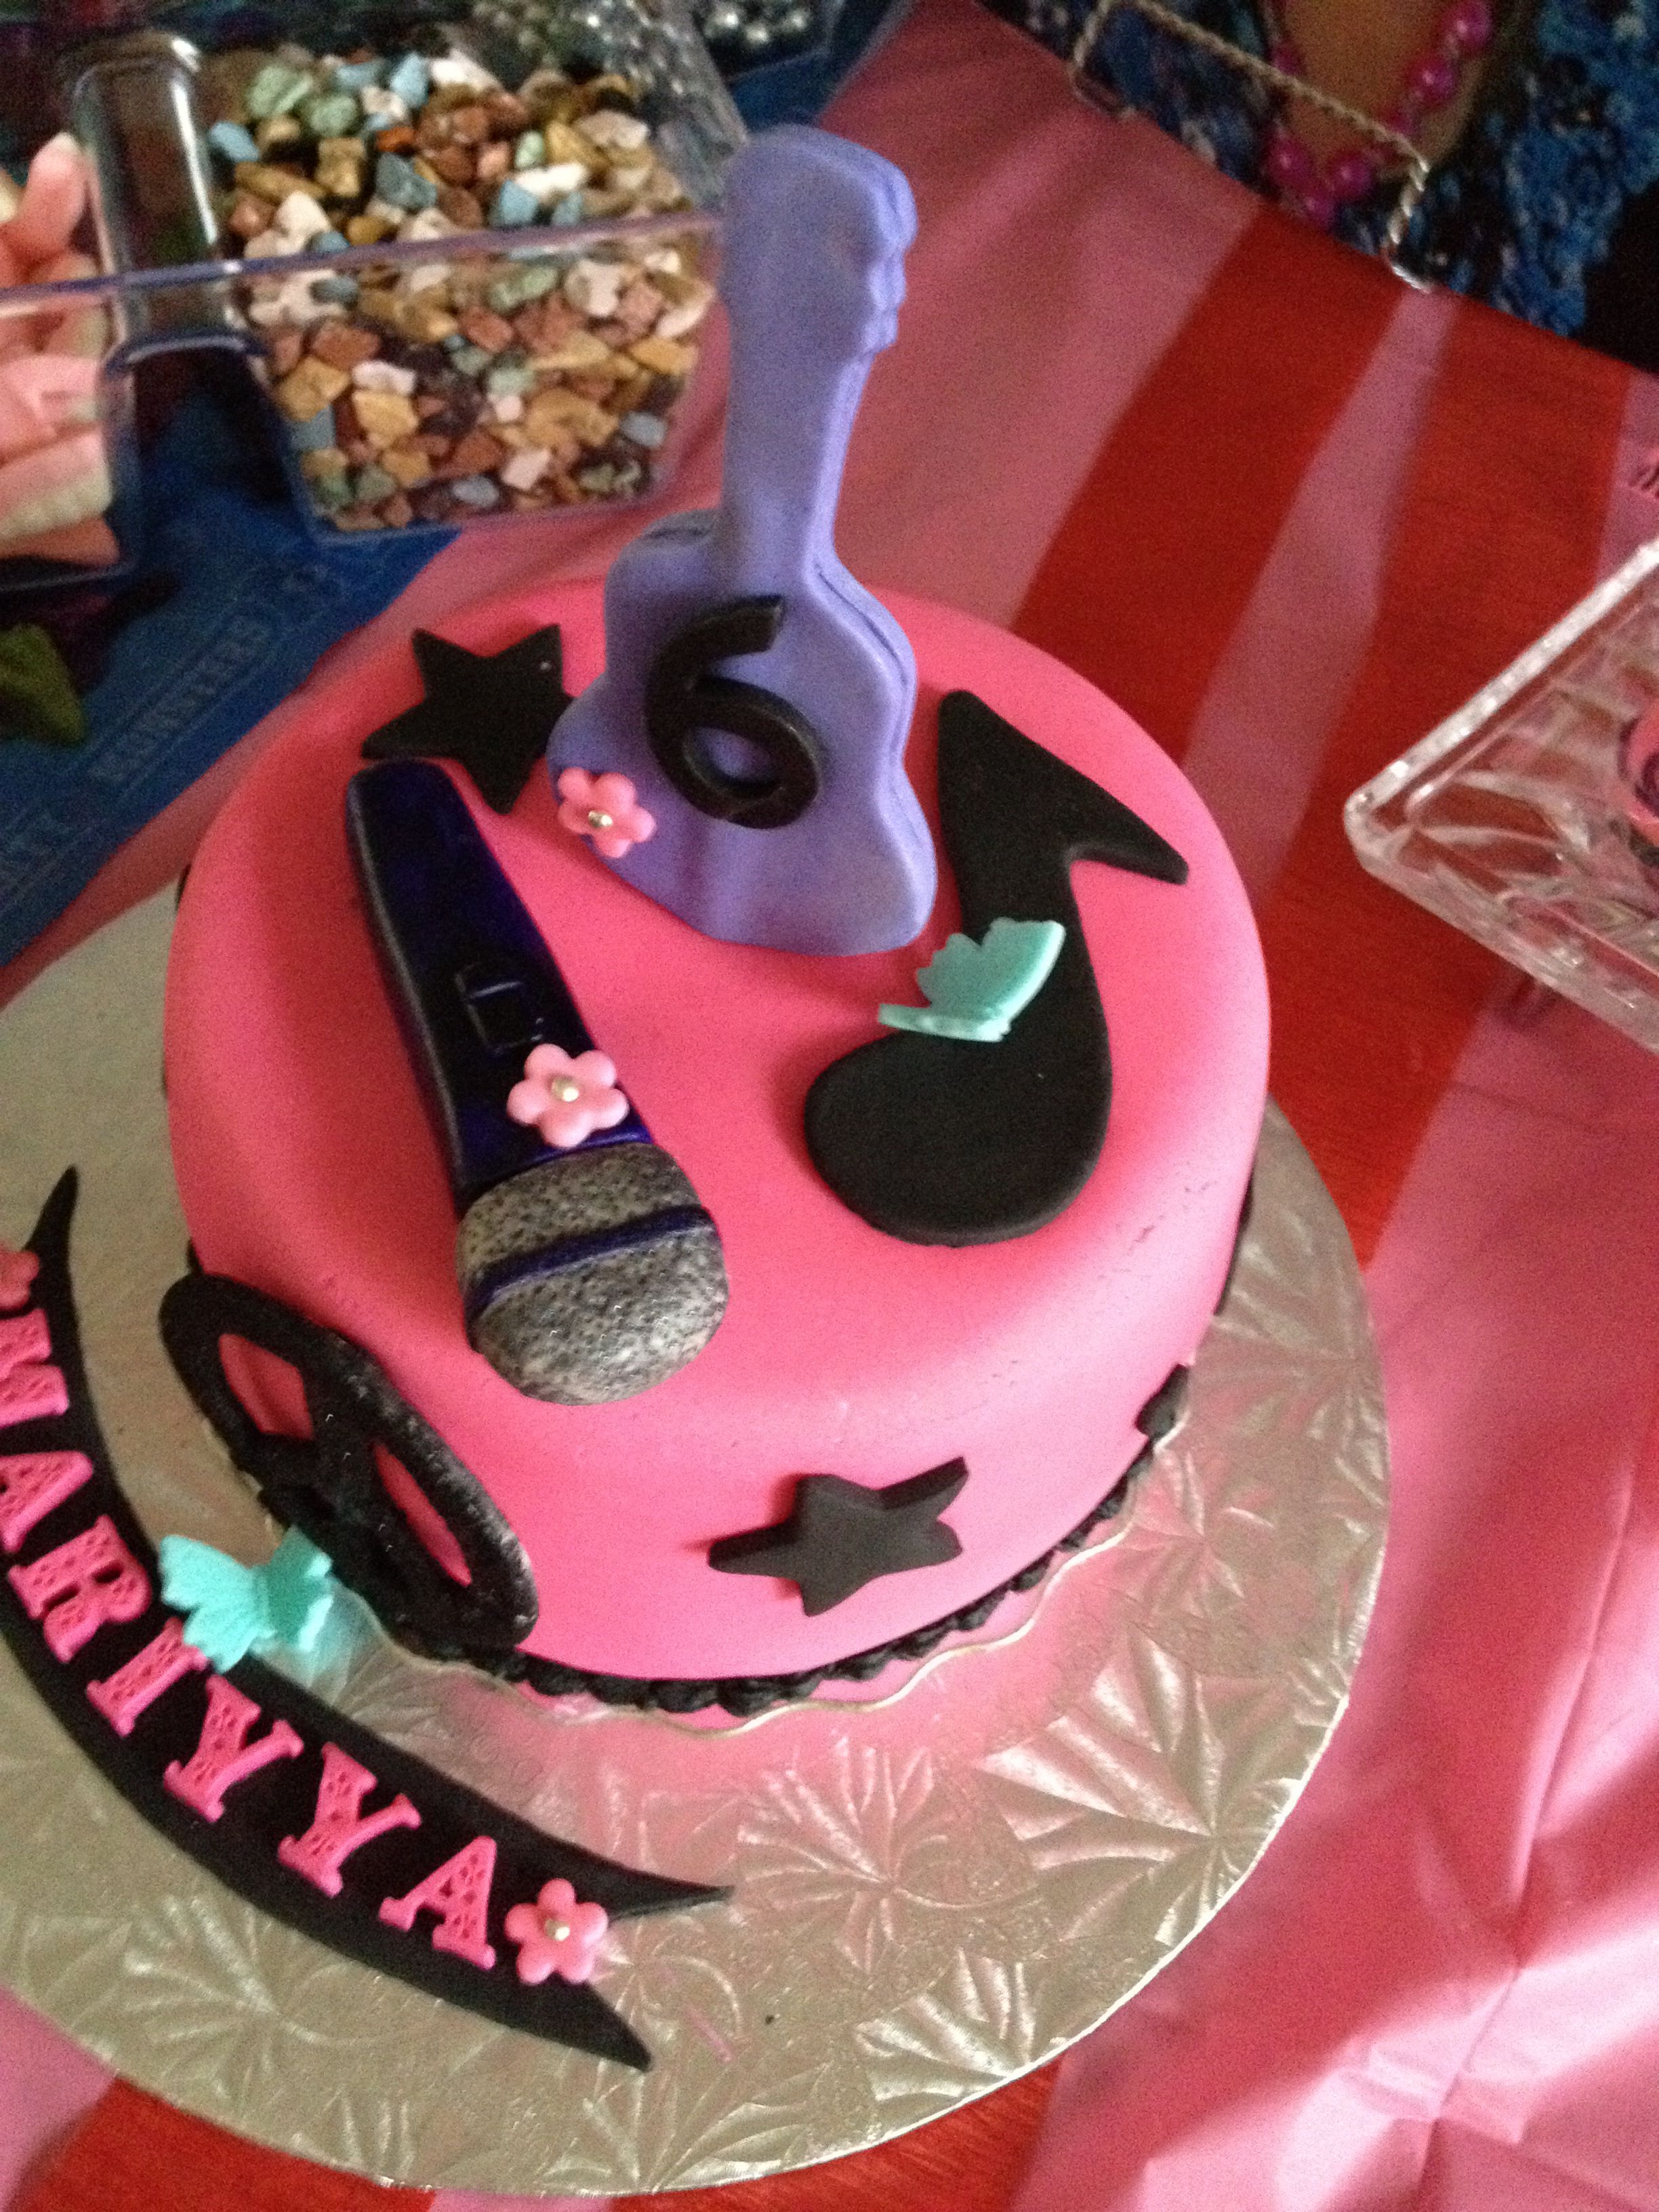 Rock N Roll Cake For A 6 Year Old Girl 3 Cakes Pinterest